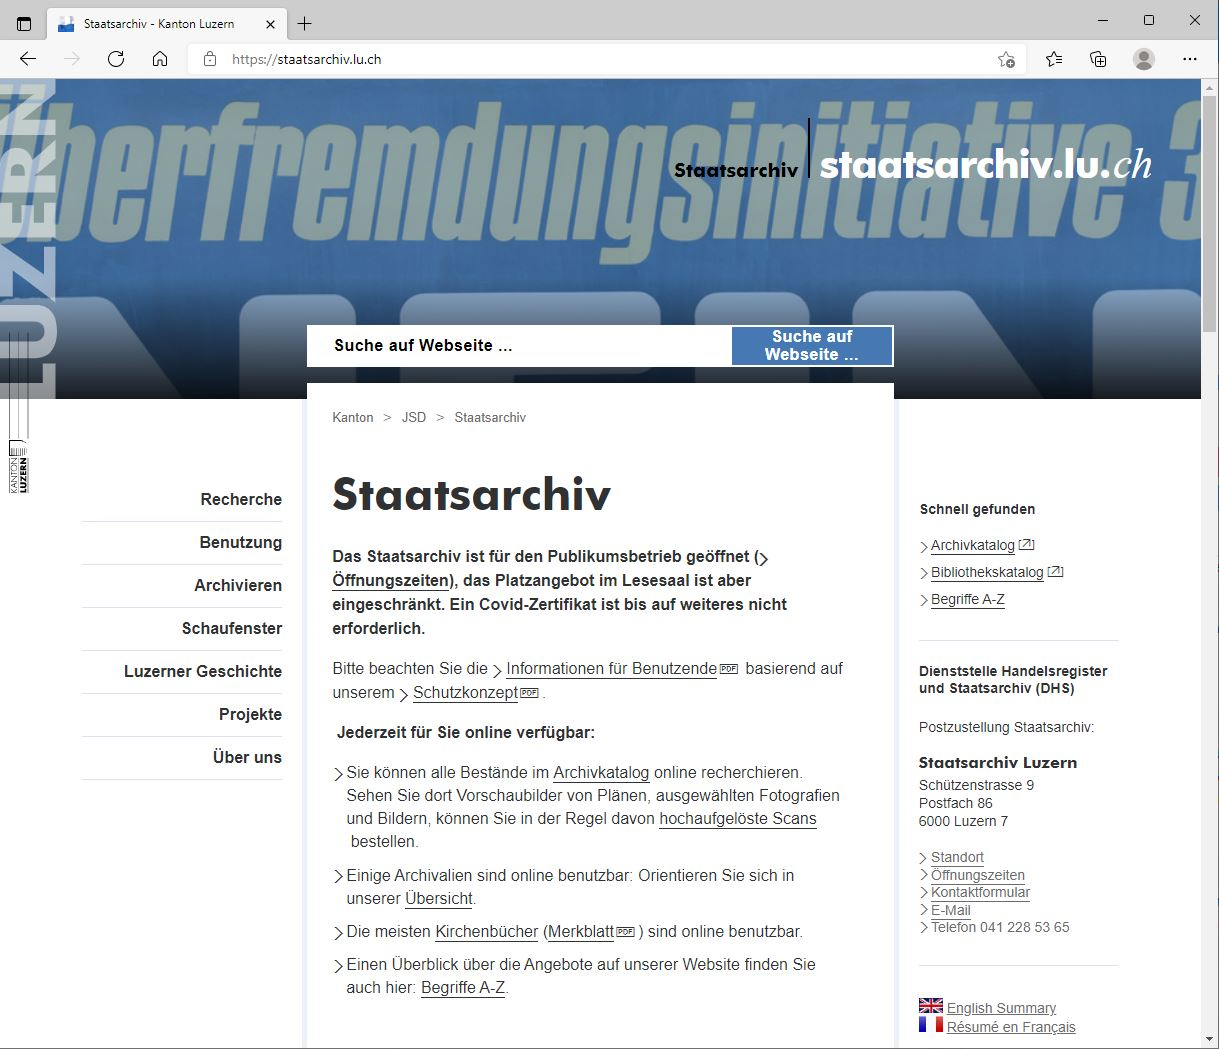 Website Staatsarchiv Luzern